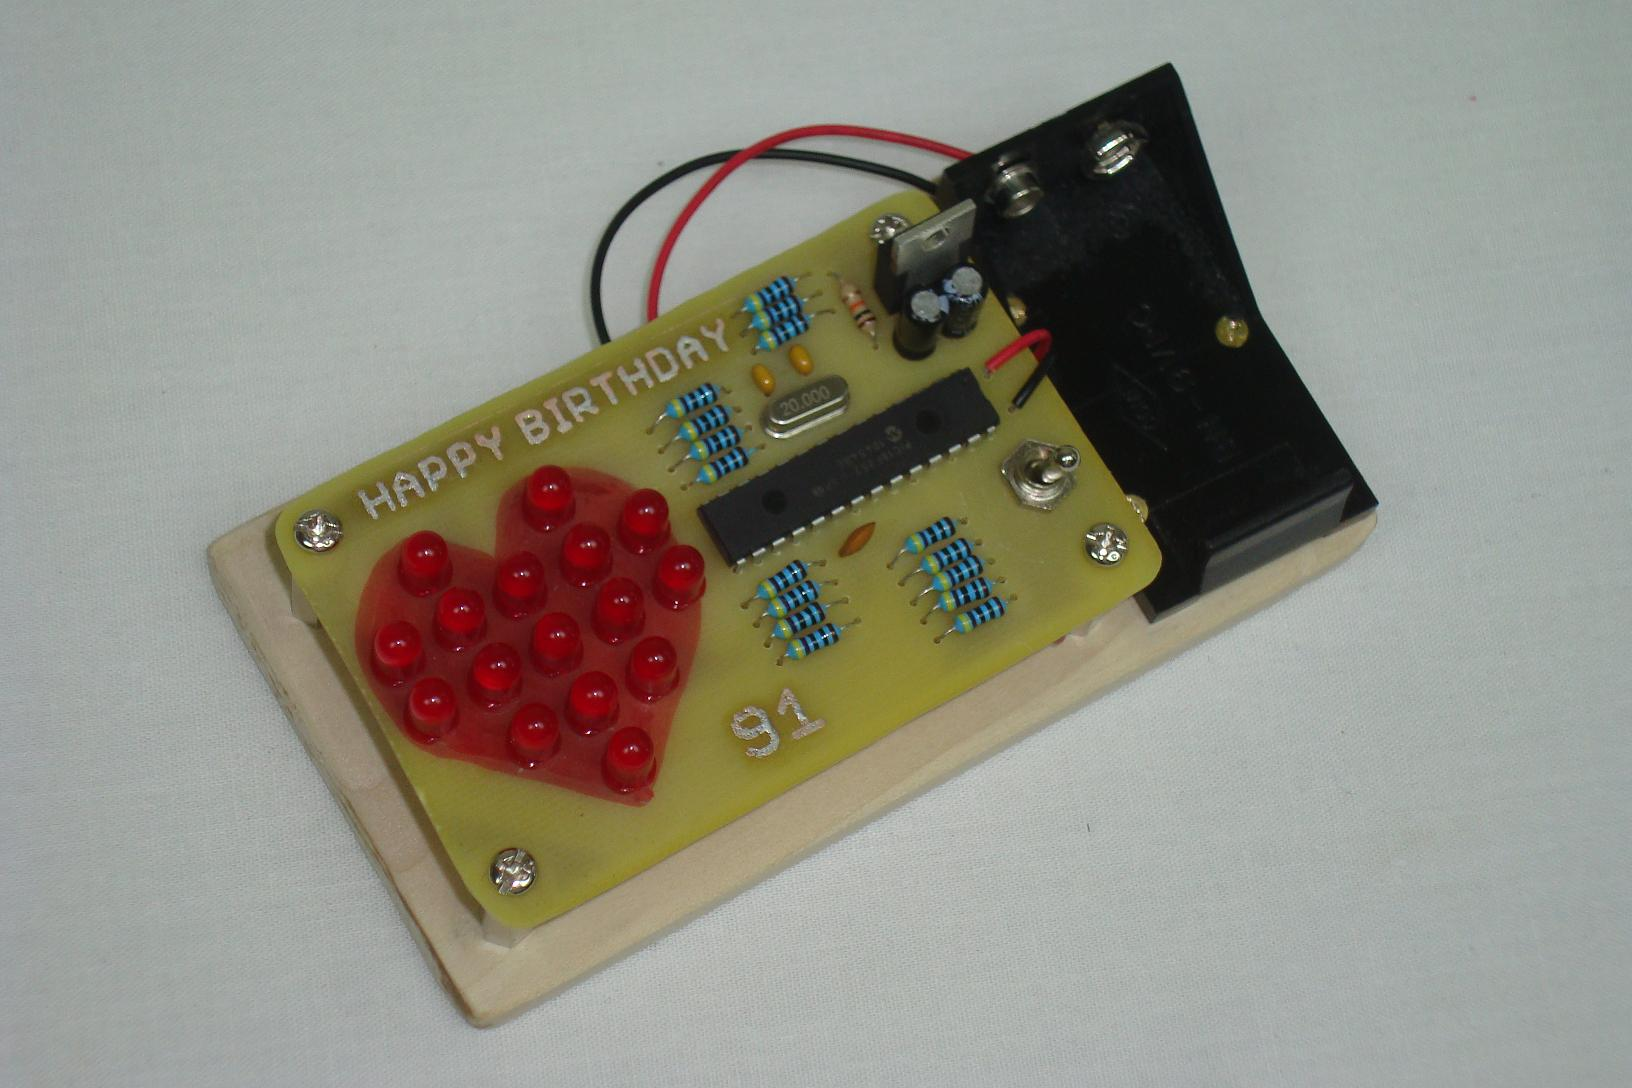 Led Heart Pwm Fading Introduction Pyroelectro News Projects Electronics Forum Circuits And Microcontrollers